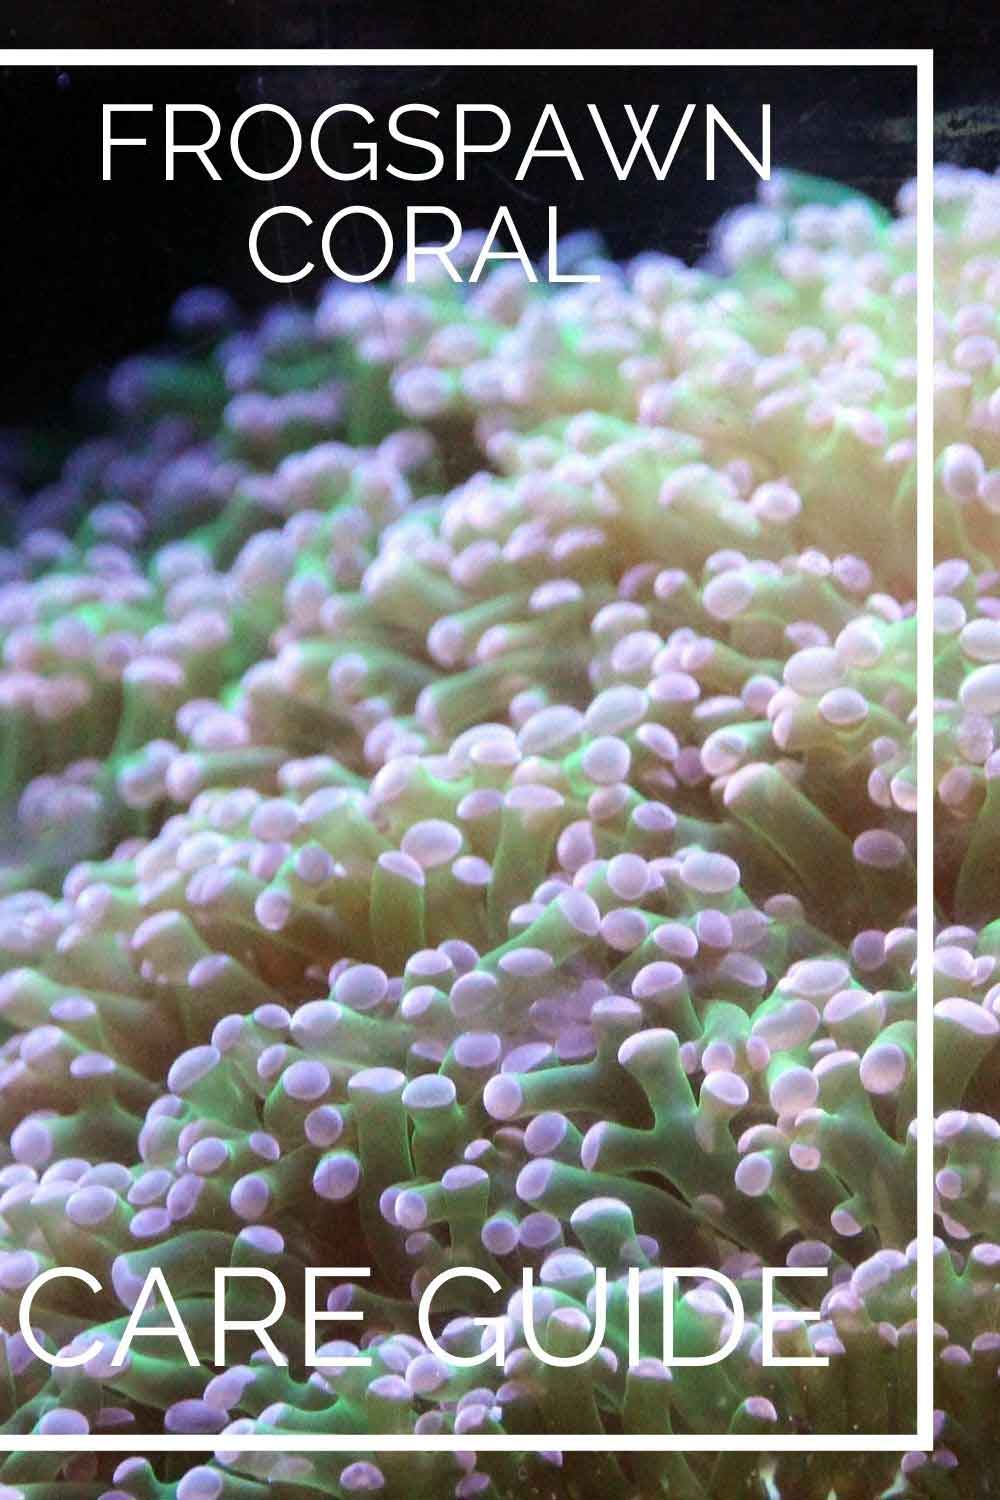 Frogspawn coral care guide